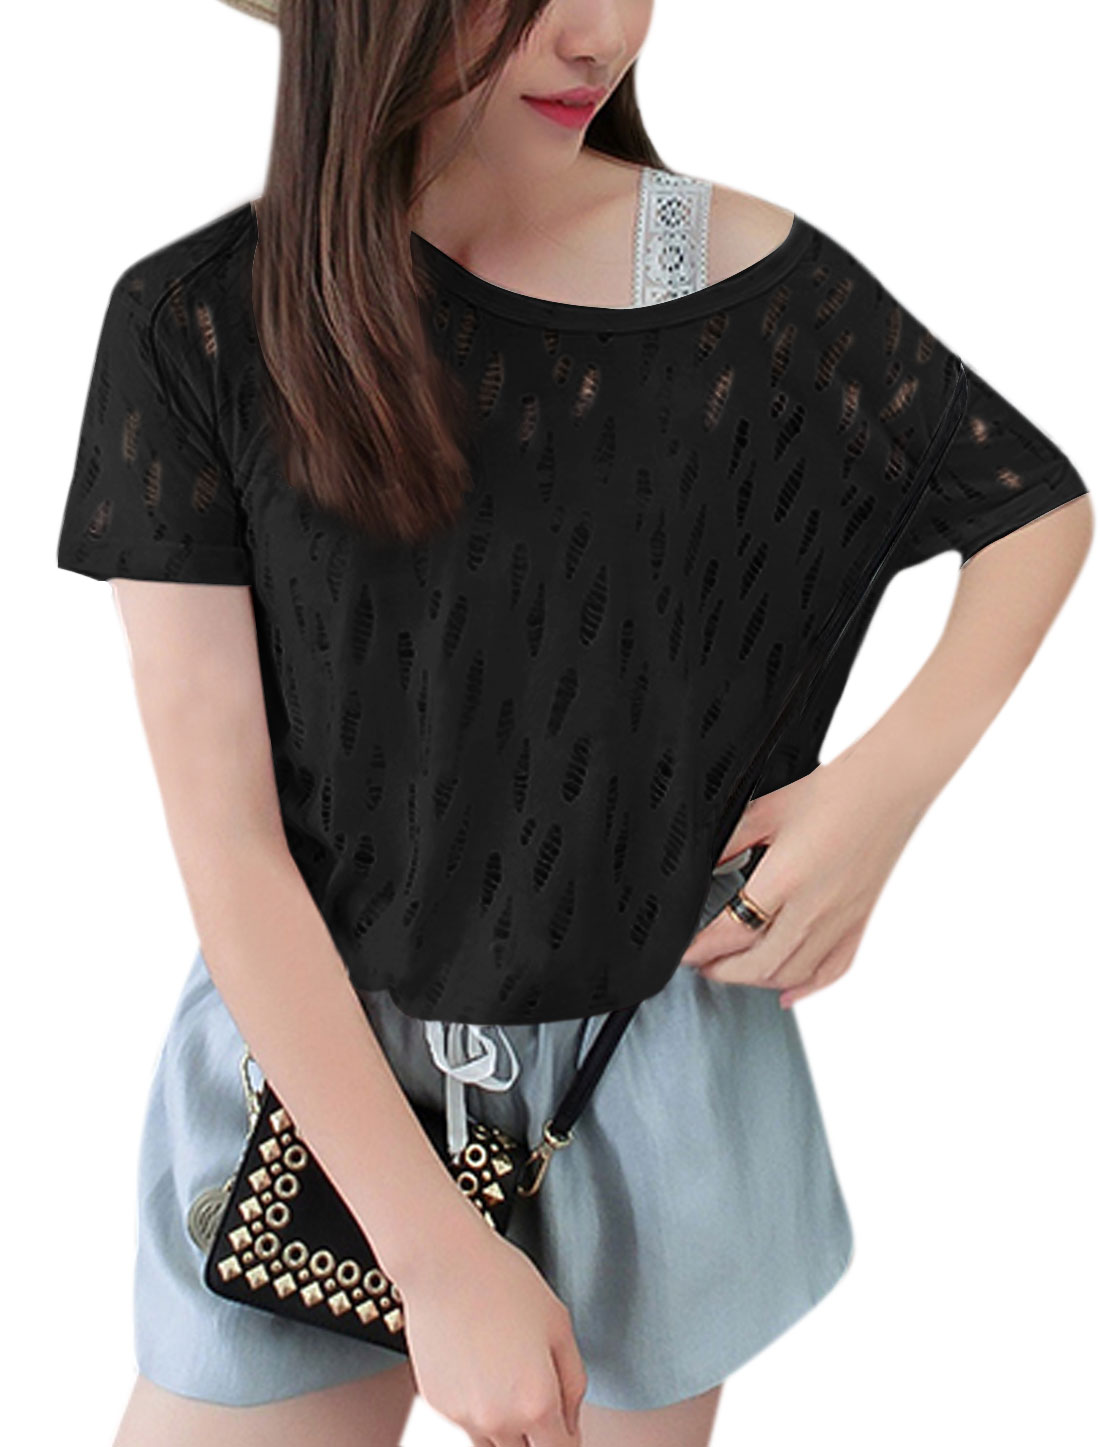 Woman Distressed Hollow Out Round Neck Slipover Casual Tee Black XS